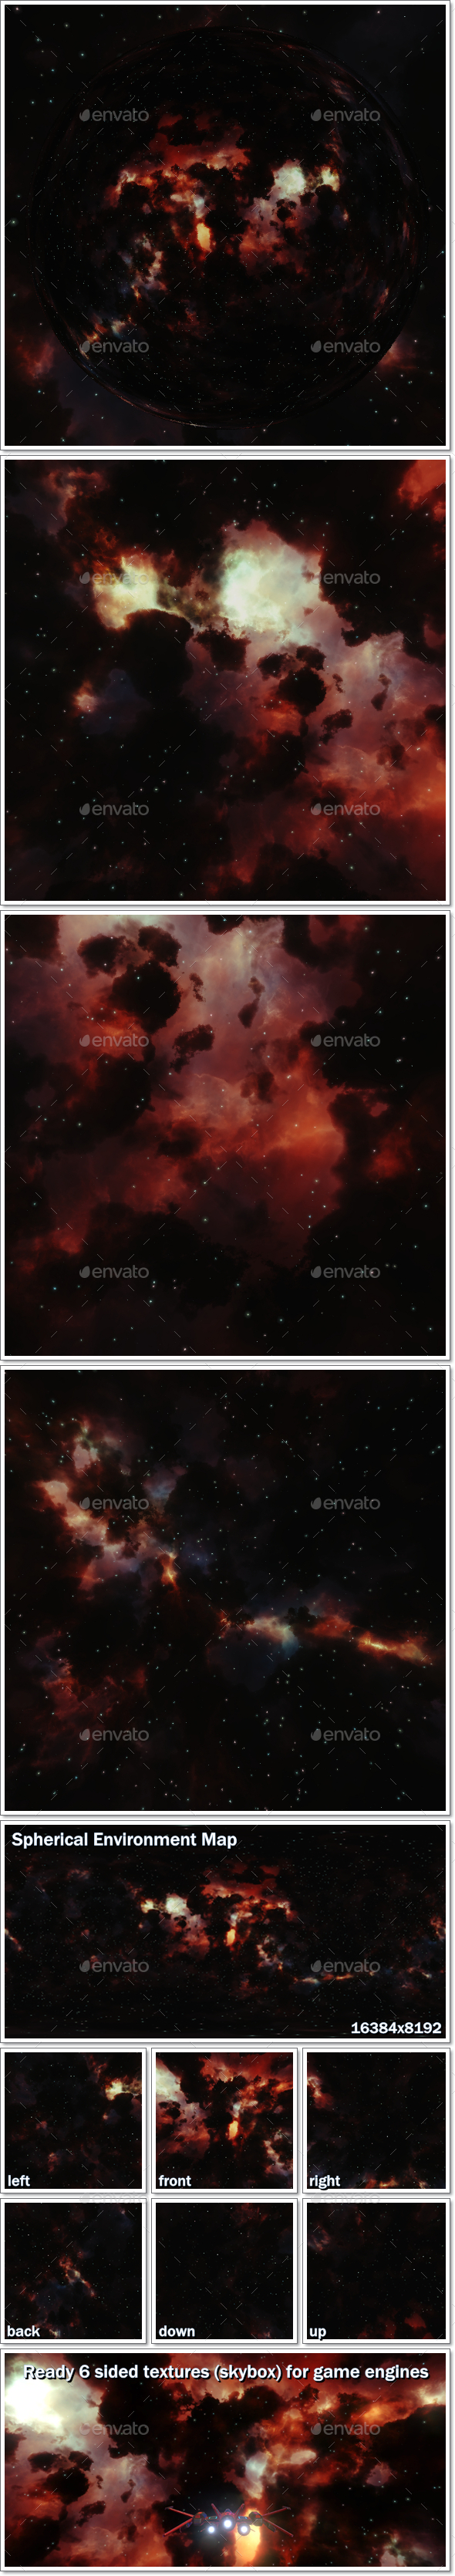 Nebula Space Environment HDRI Map 005 - 3DOcean Item for Sale